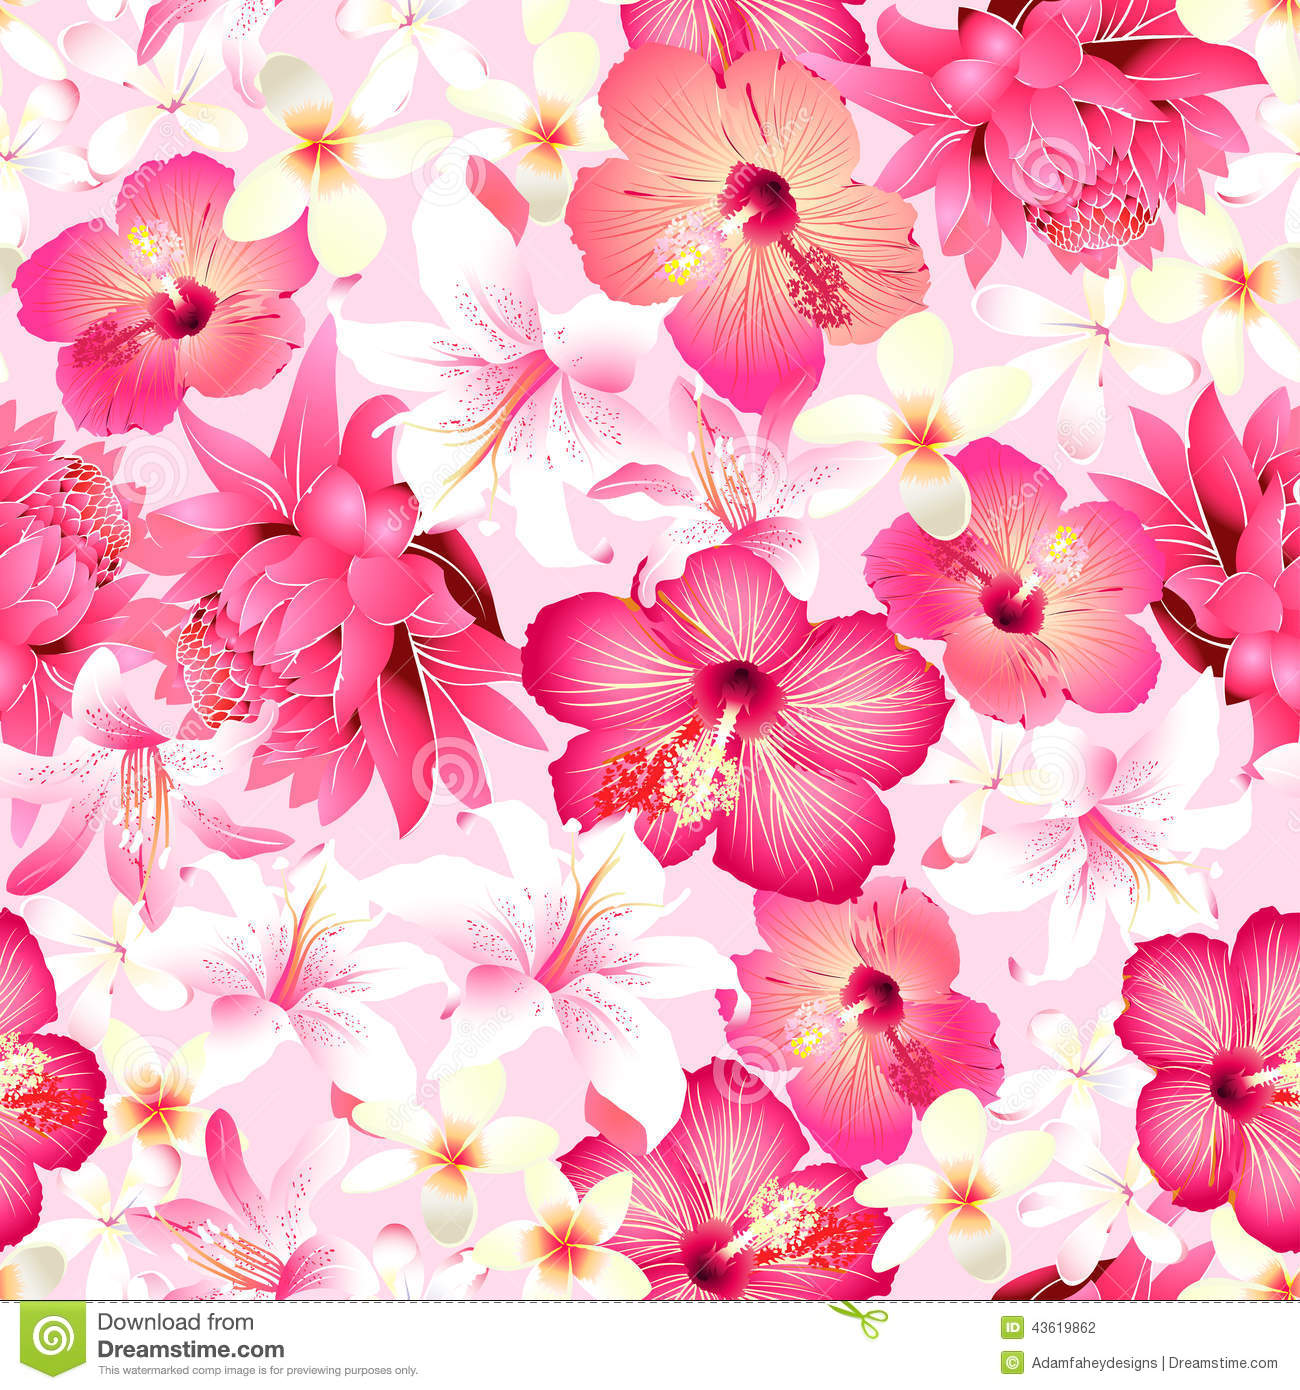 Flower Pink background pattern pictures